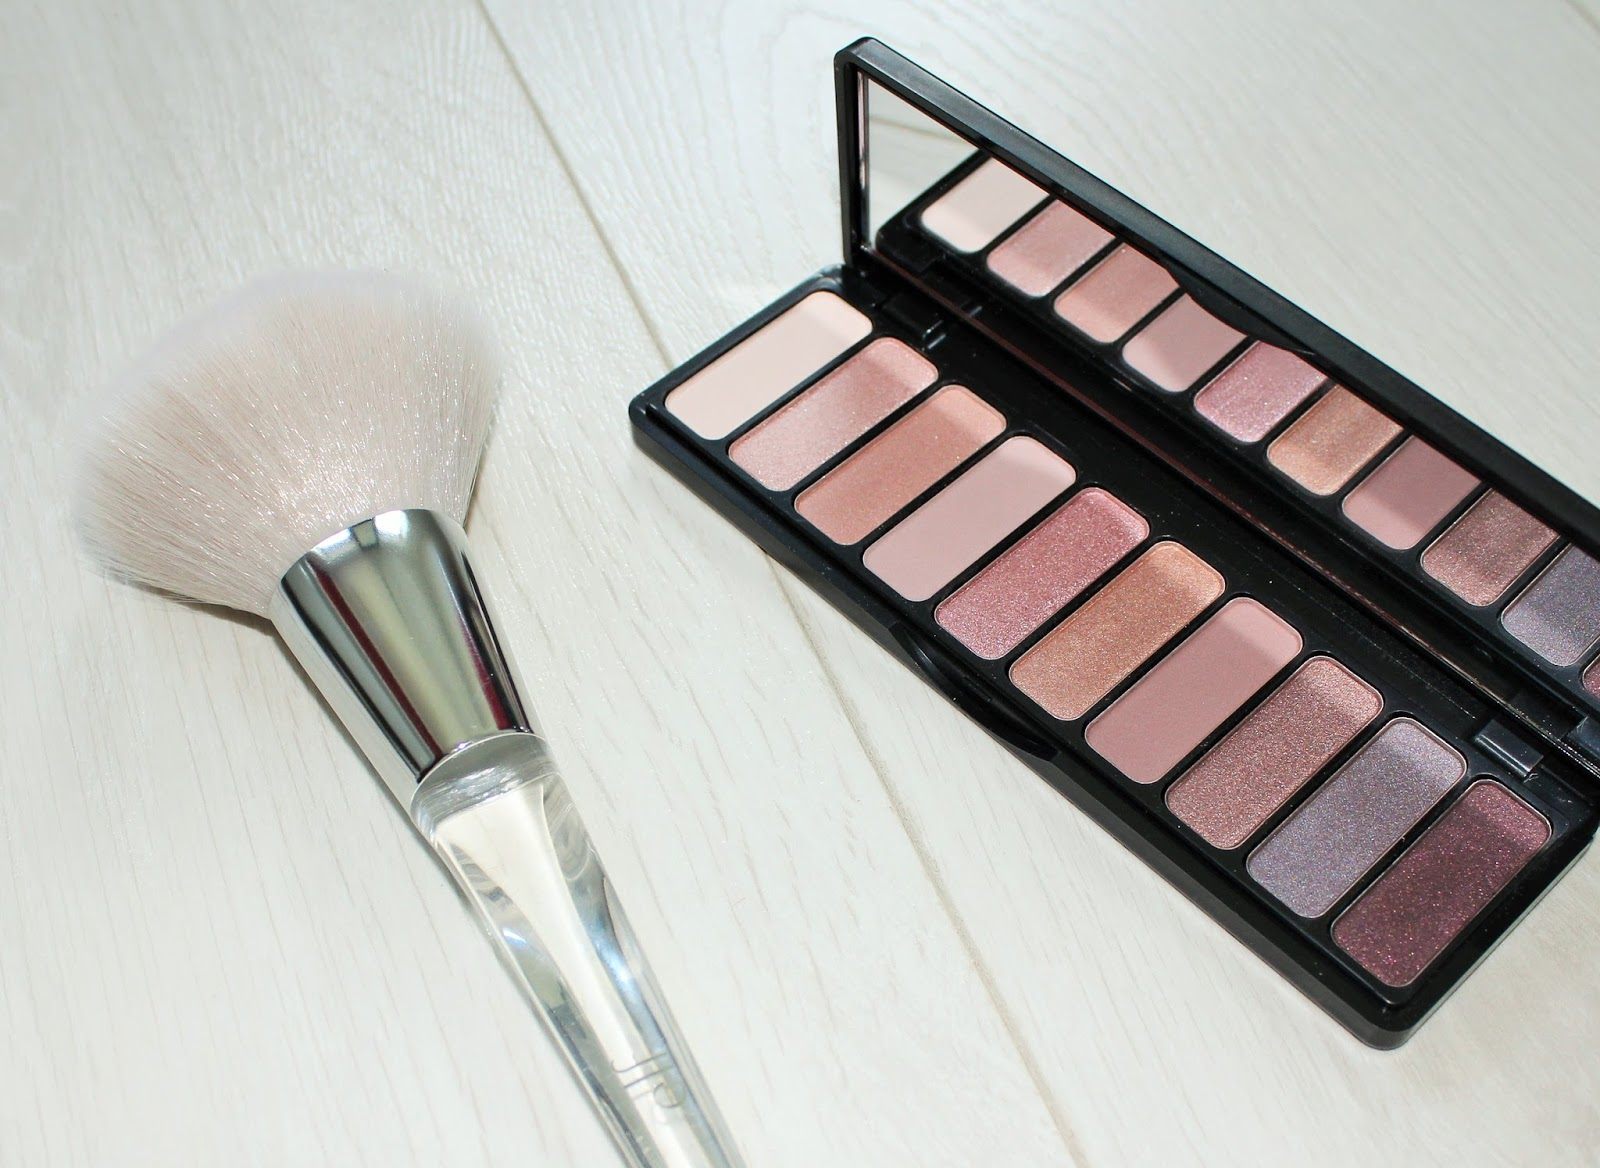 E.l.f. Cosmetics 7 - Nude Rose Gold Eyeshadow Palette